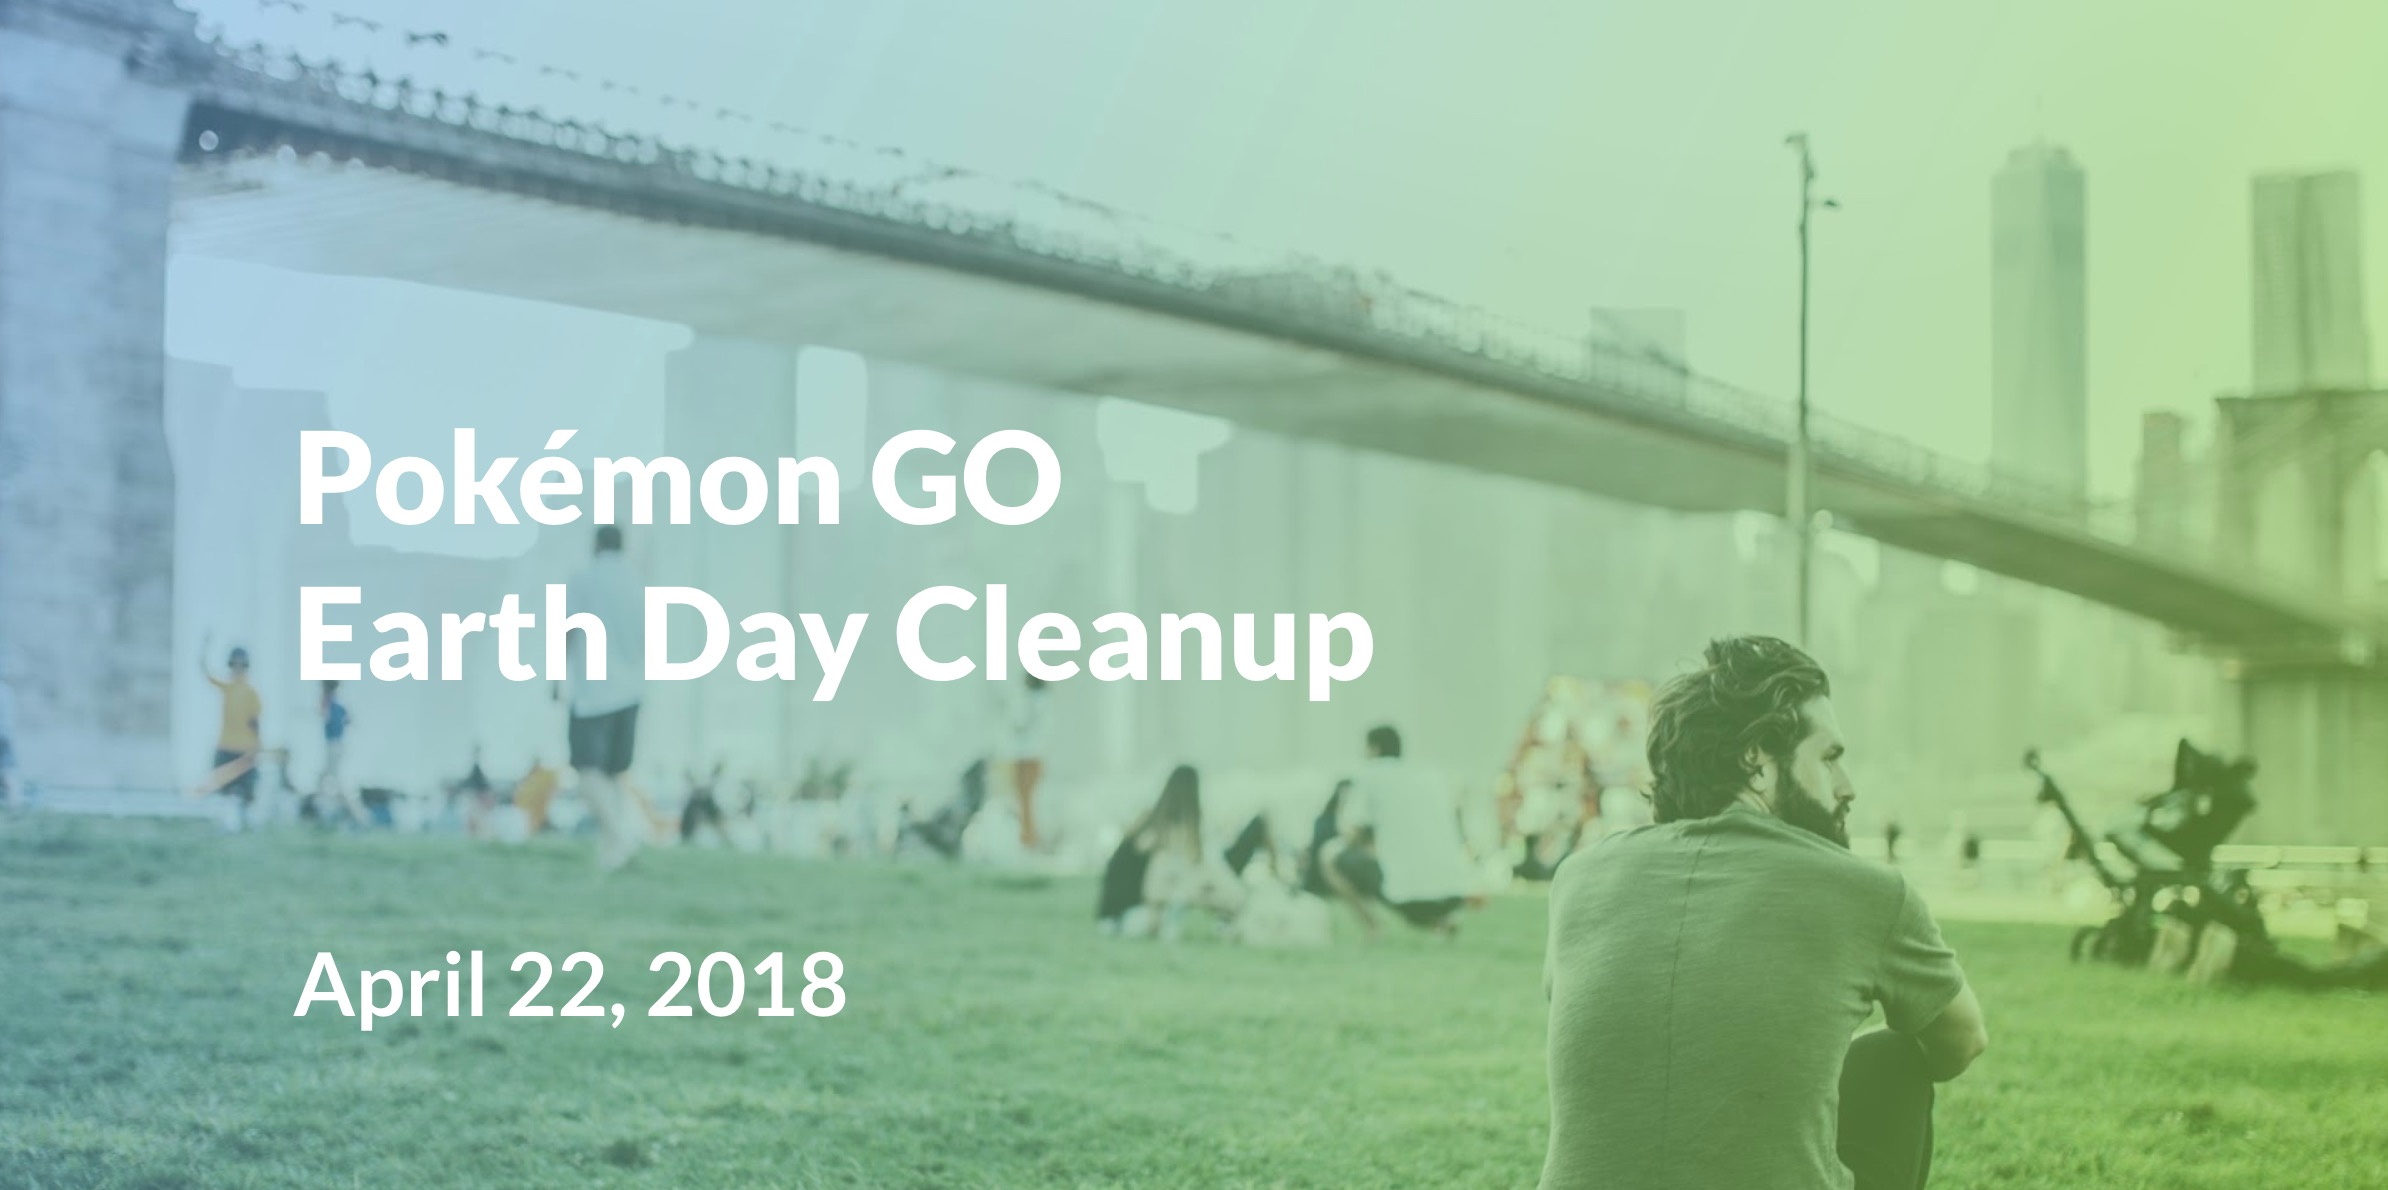 Pokémon GO Earth Day Cleanup